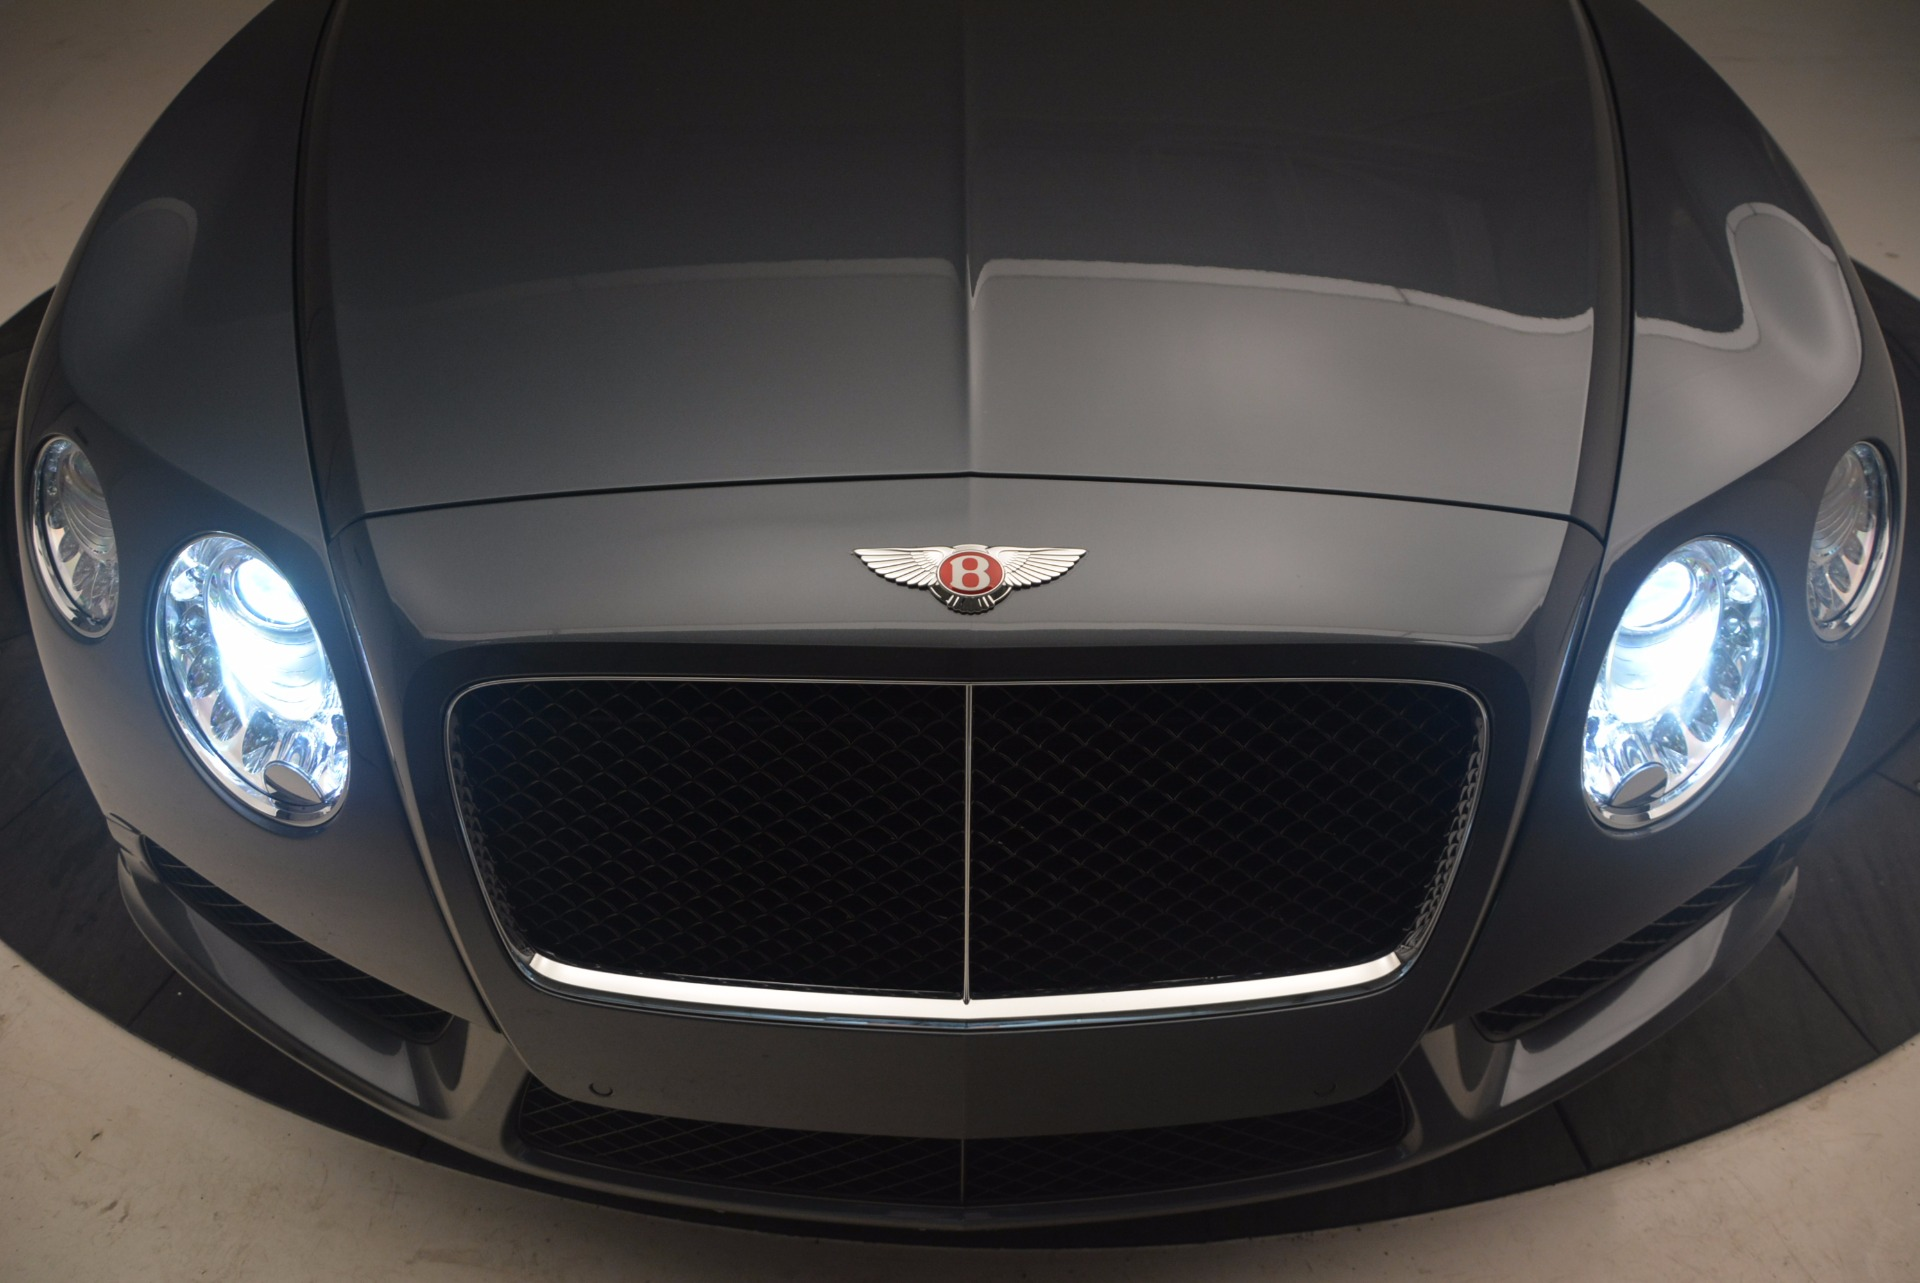 Used 2013 Bentley Continental GT V8 Le Mans Edition, 1 of 48 For Sale In Westport, CT 1288_p26